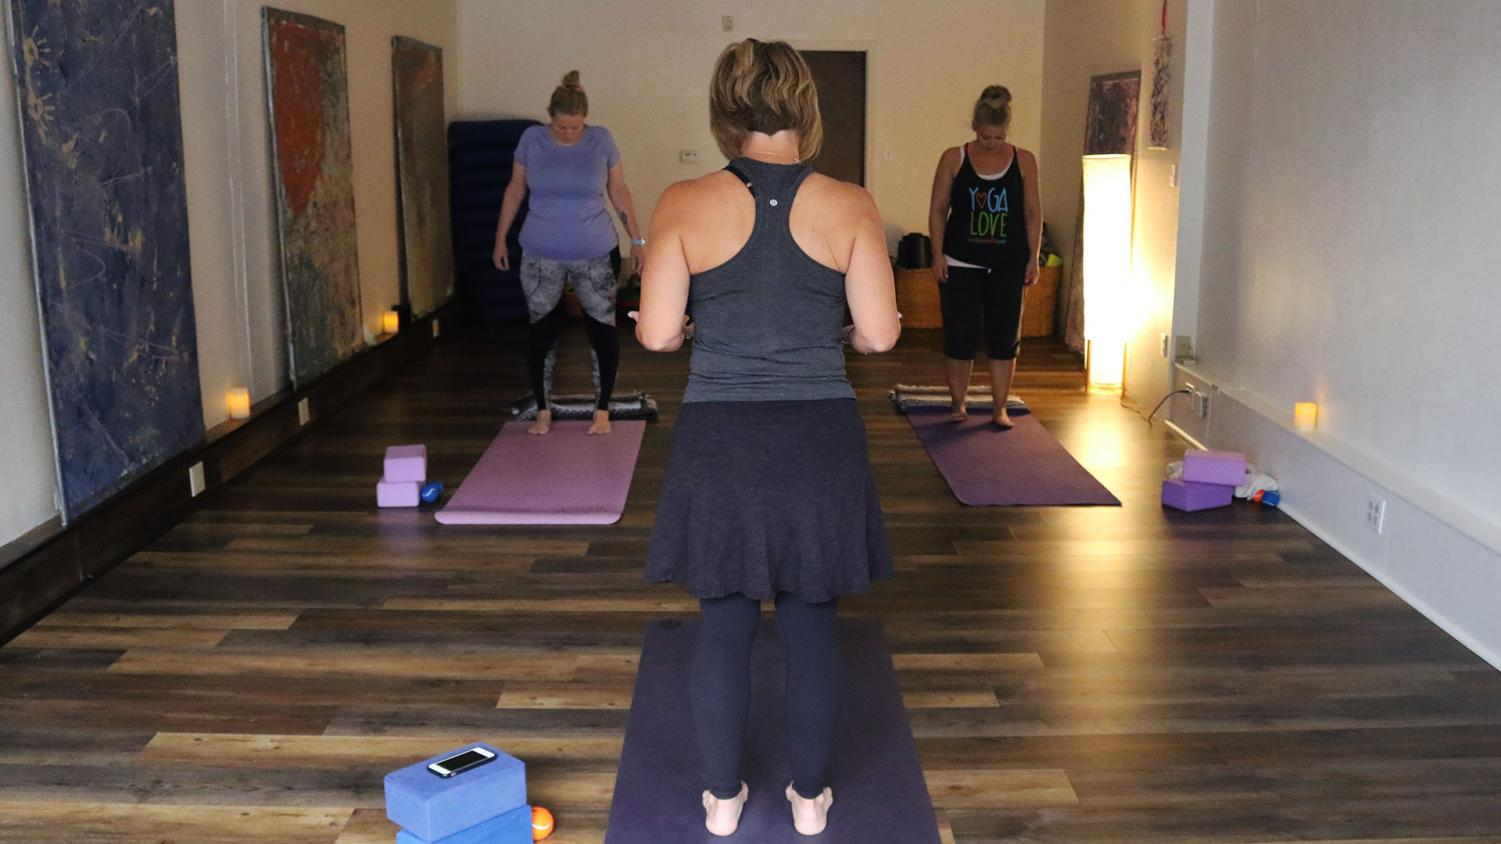 Co-owner of Om Grown Lora Rimmer gives session based on breath and body 8:30 a.m. on Thursdays. Rimmer looks to reach Baker student body with athlete session on Saturdays.